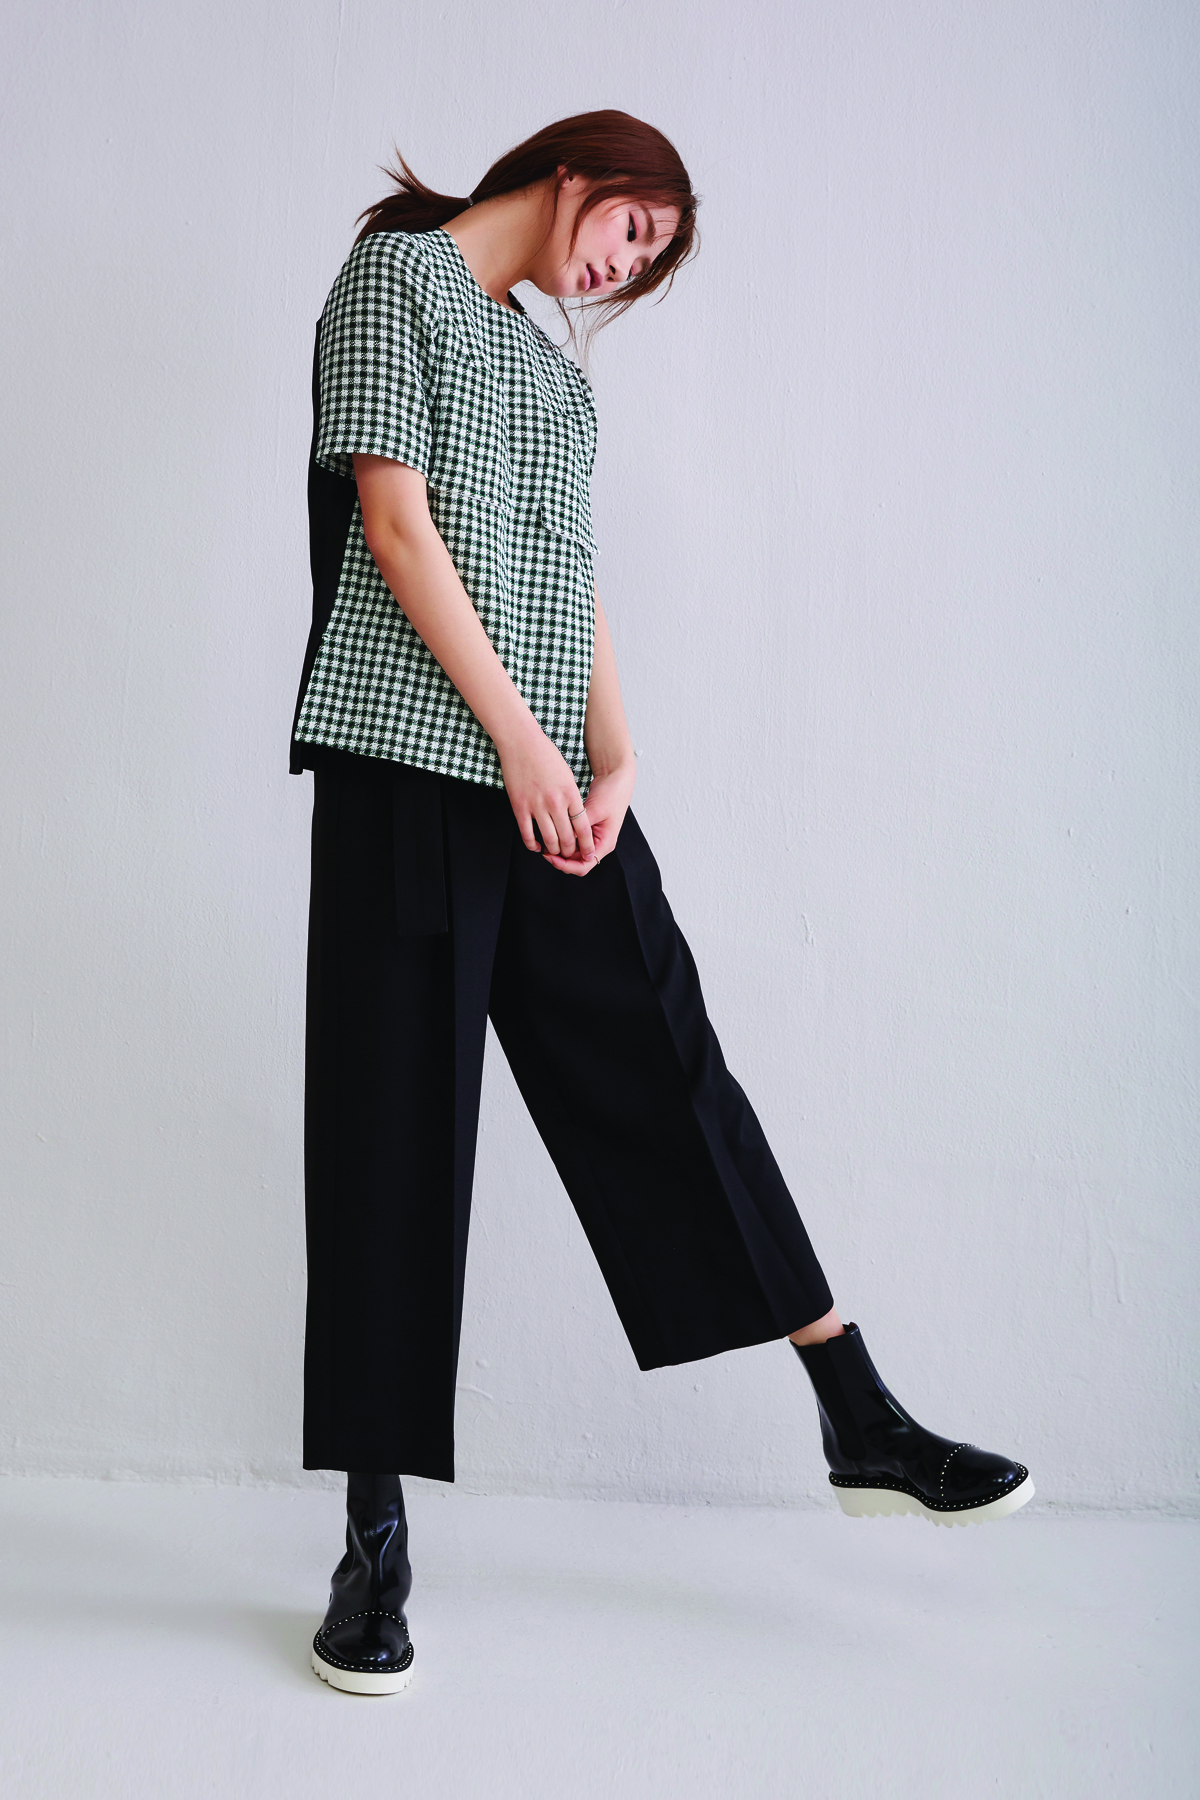 [OFF 50%] Green Check Patterned Crop Top with Black Silk Contrast